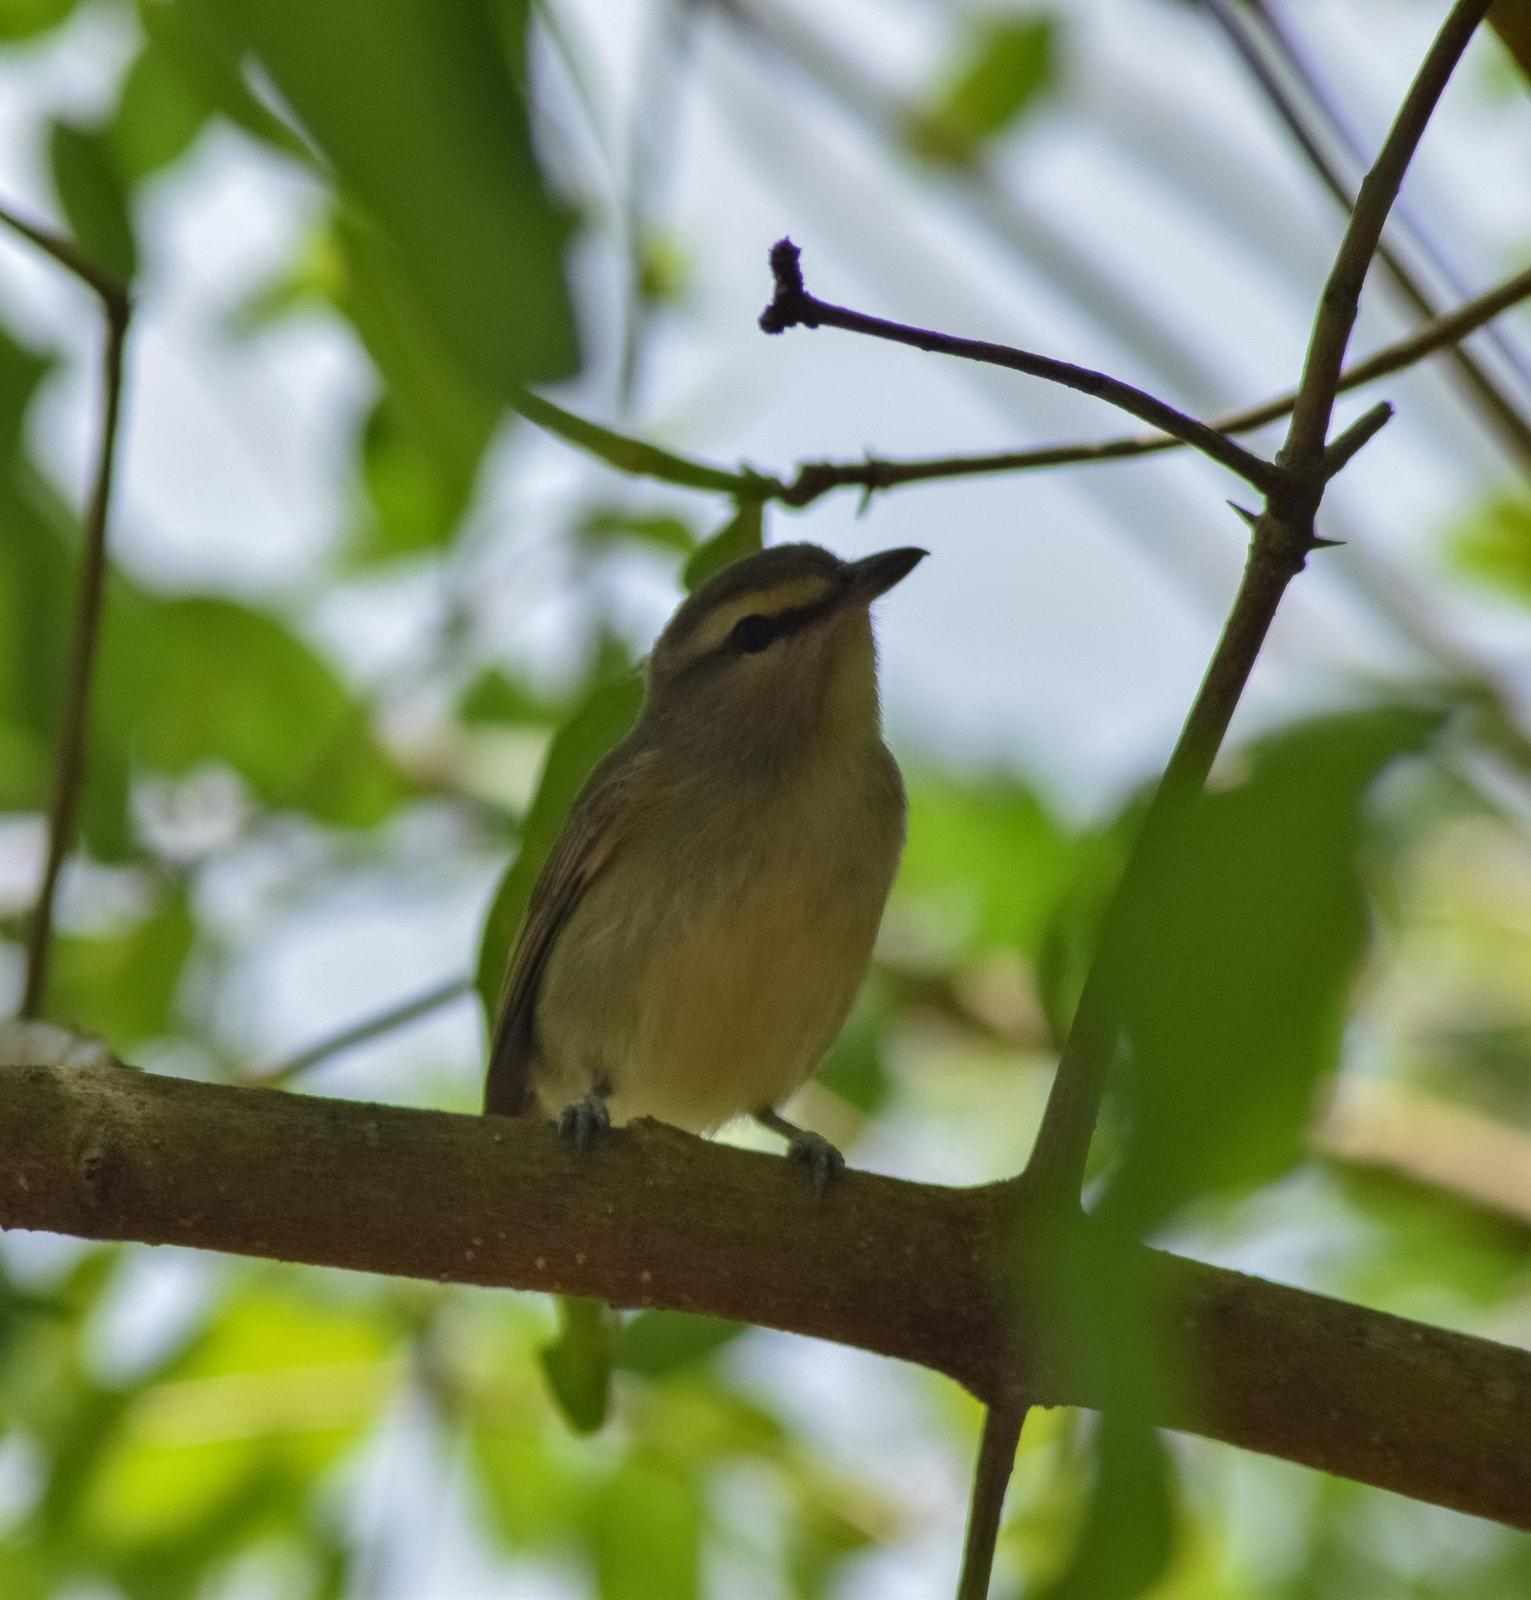 Yucatan Vireo Photo by Laura A. Martínez Cantú